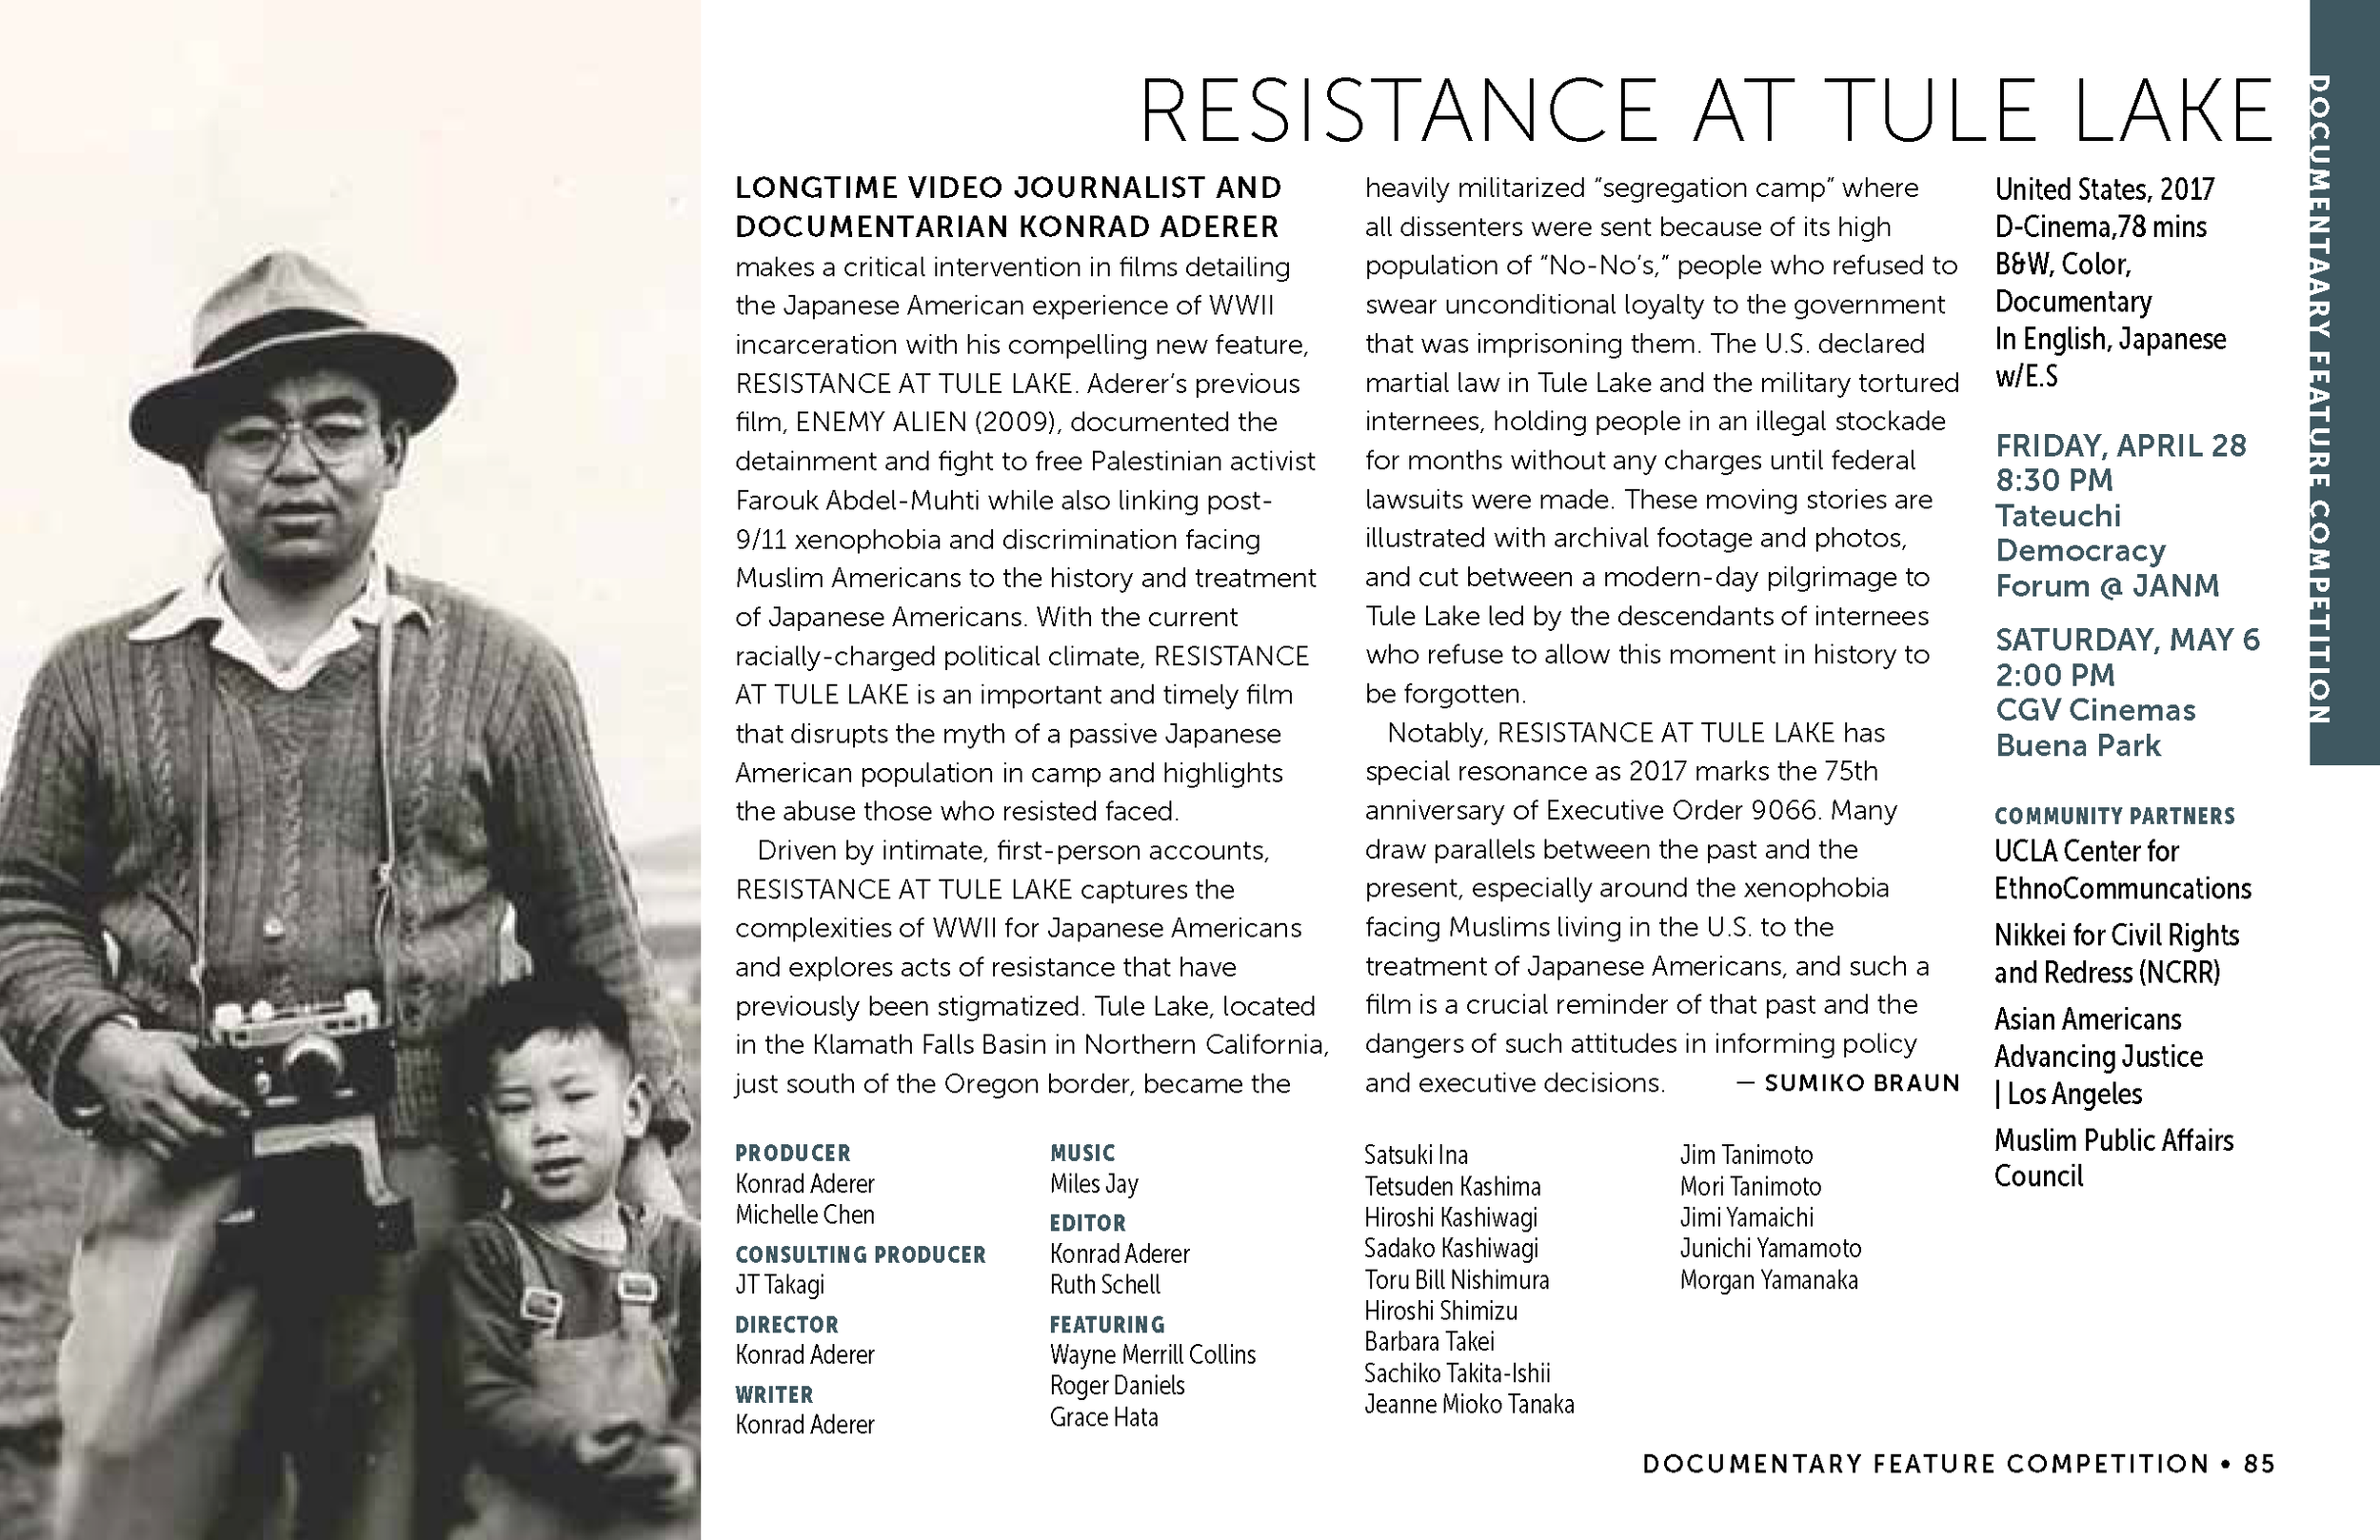 LAAPFF 2017 Program Notes: RESISTANCE AT TULE LAKE